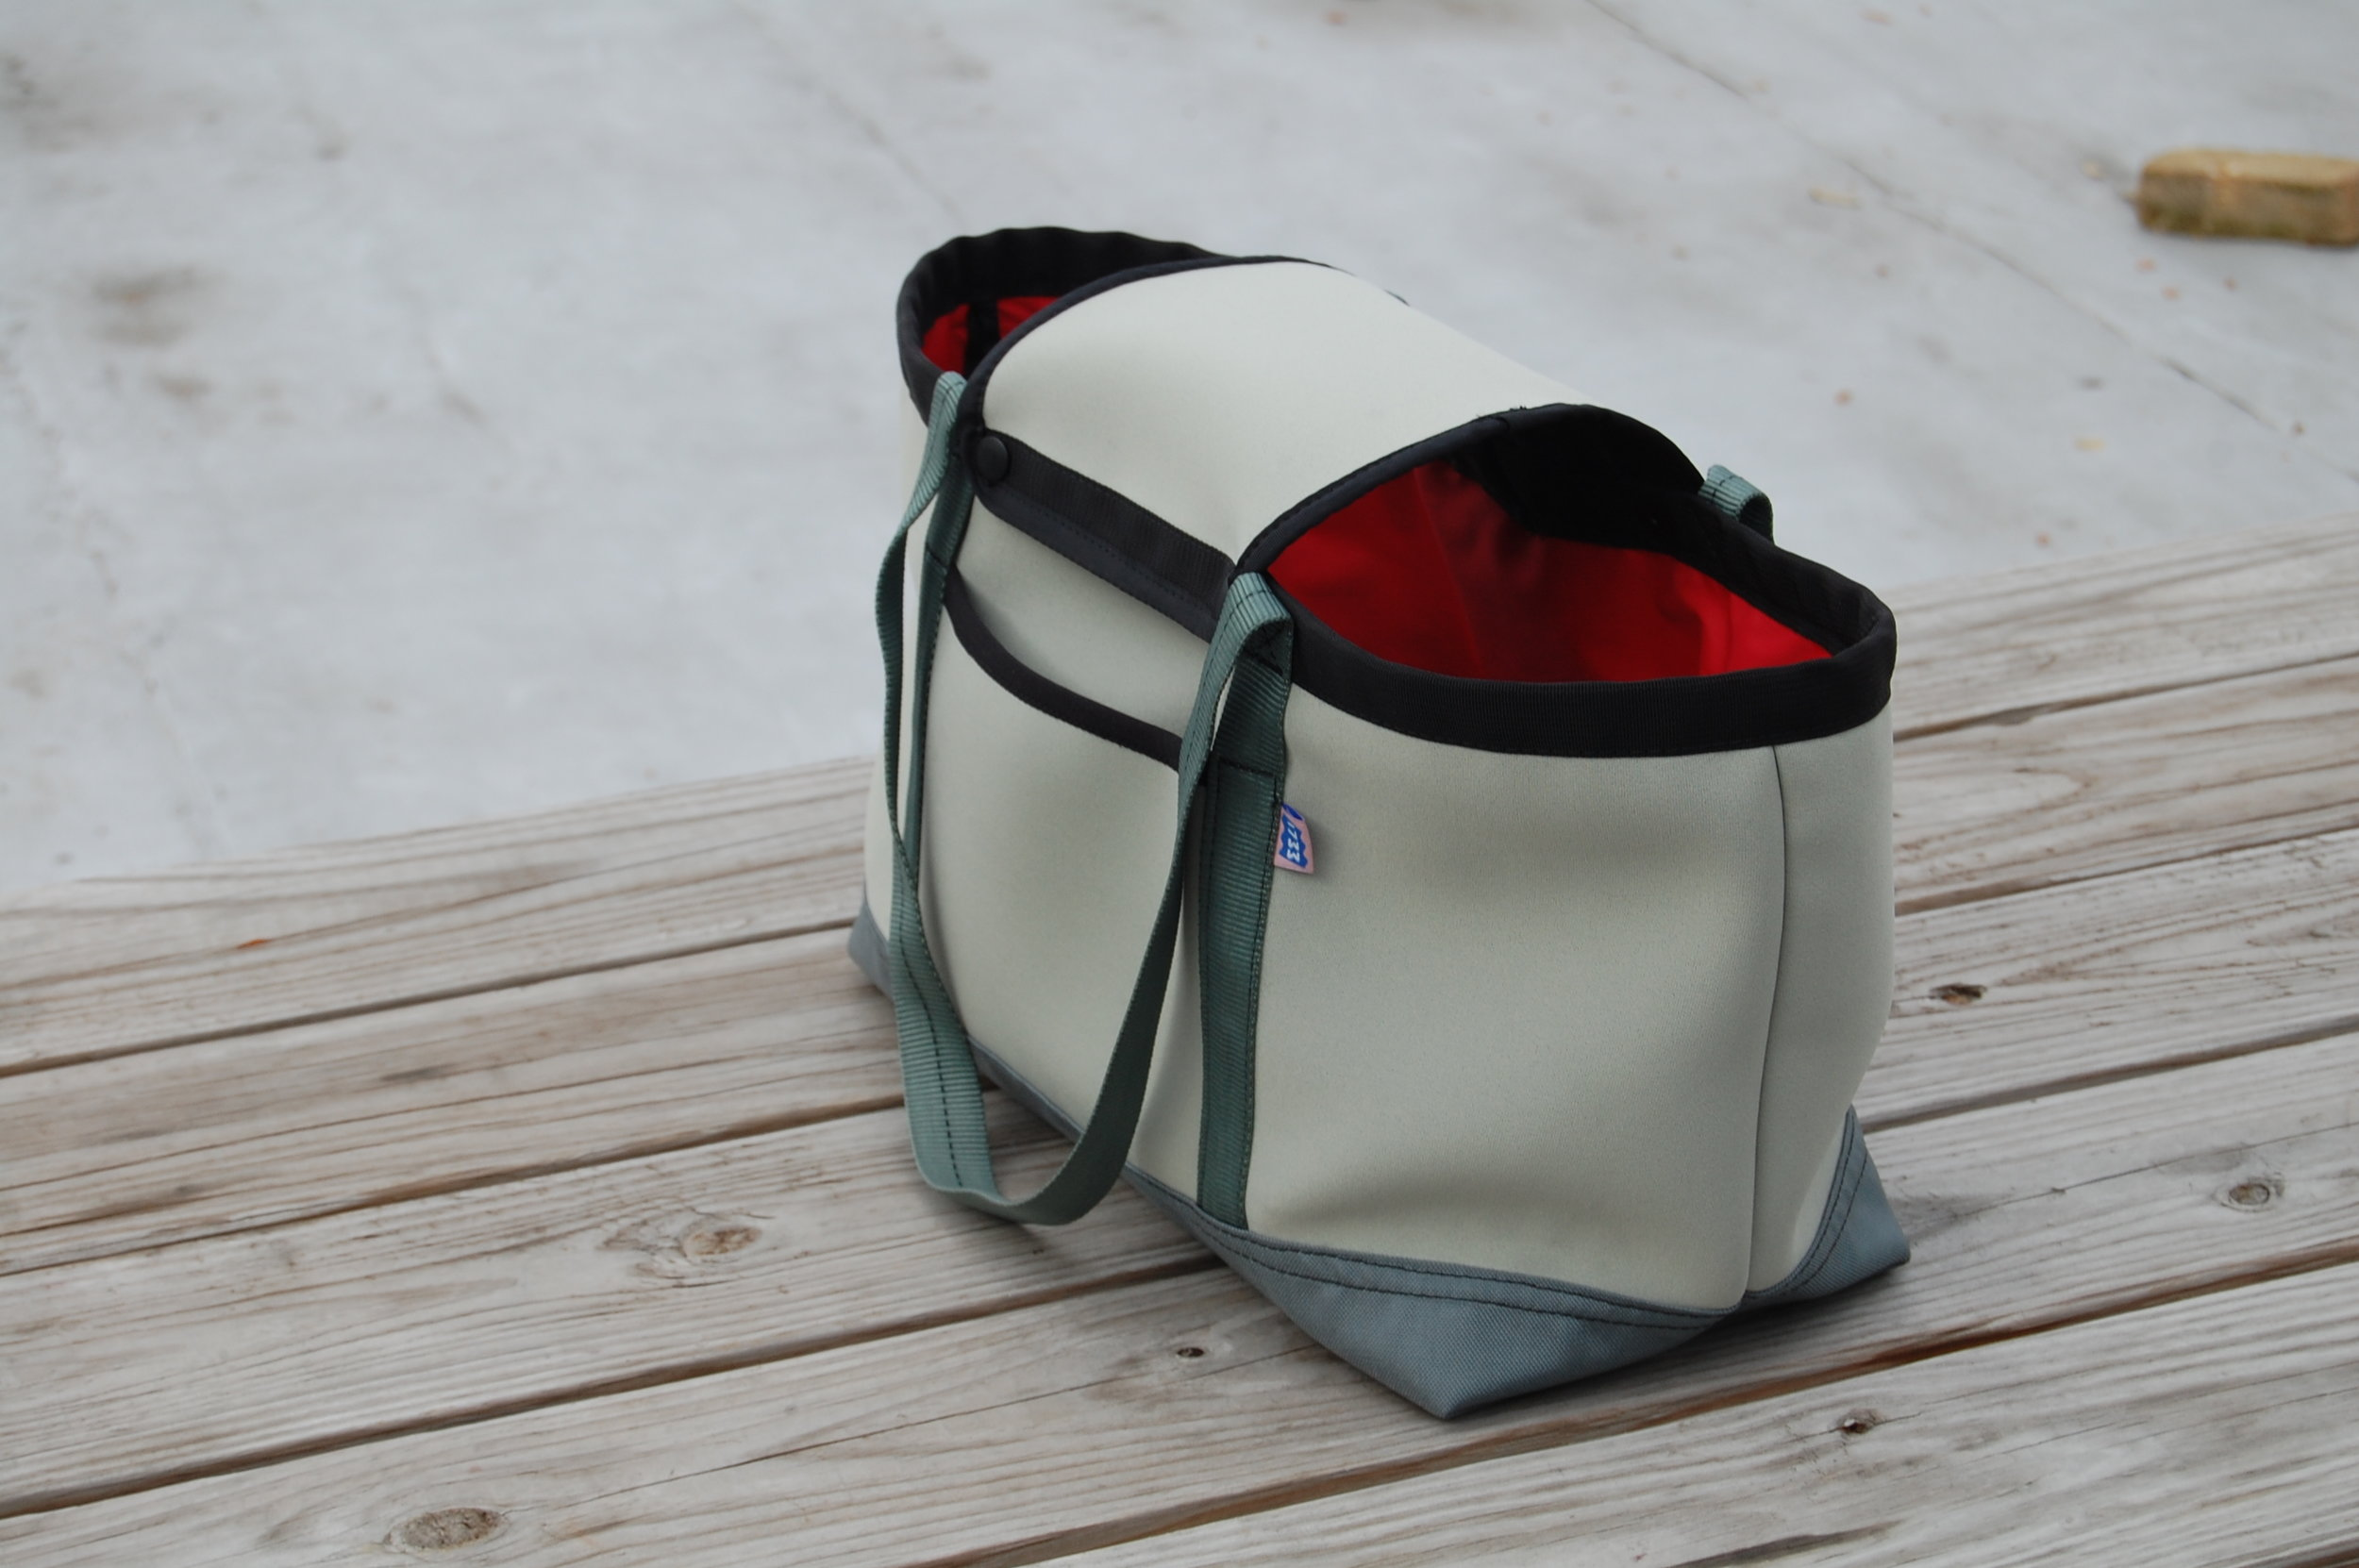 Neoprene tote with a detachable lid designed for carrying a dog.